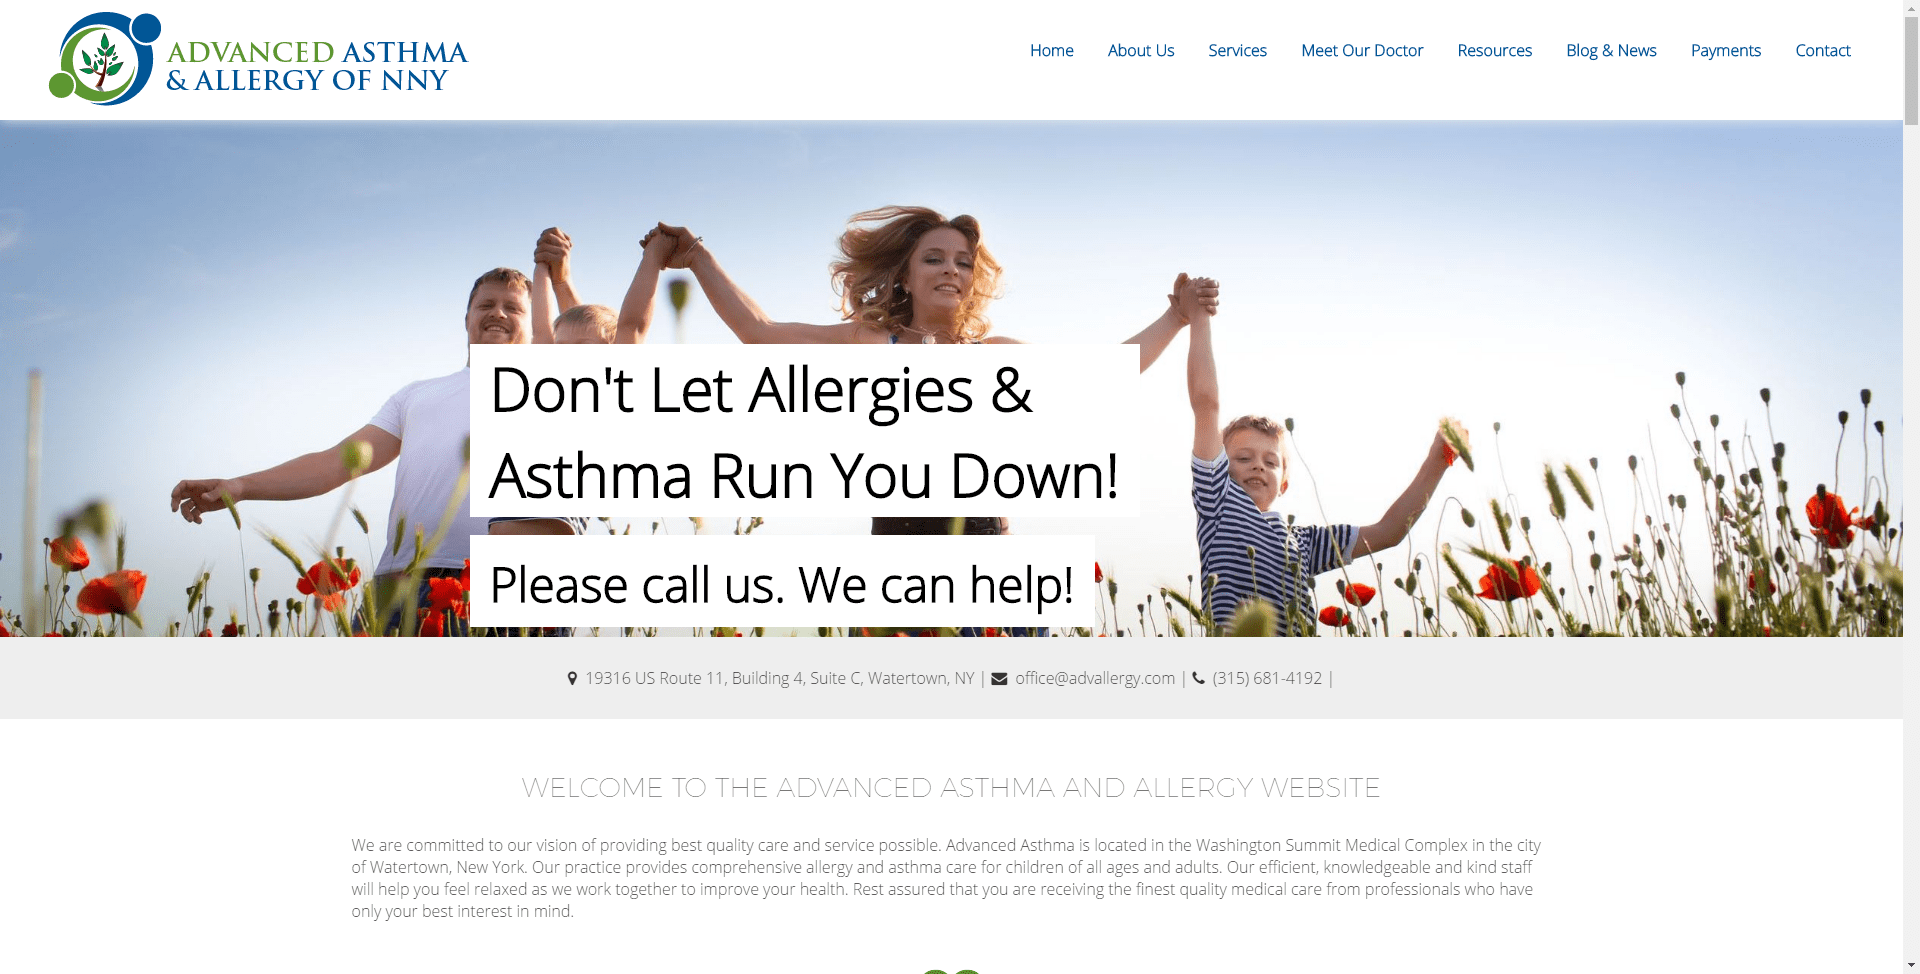 Advanced Asthma & Allergy of NNY